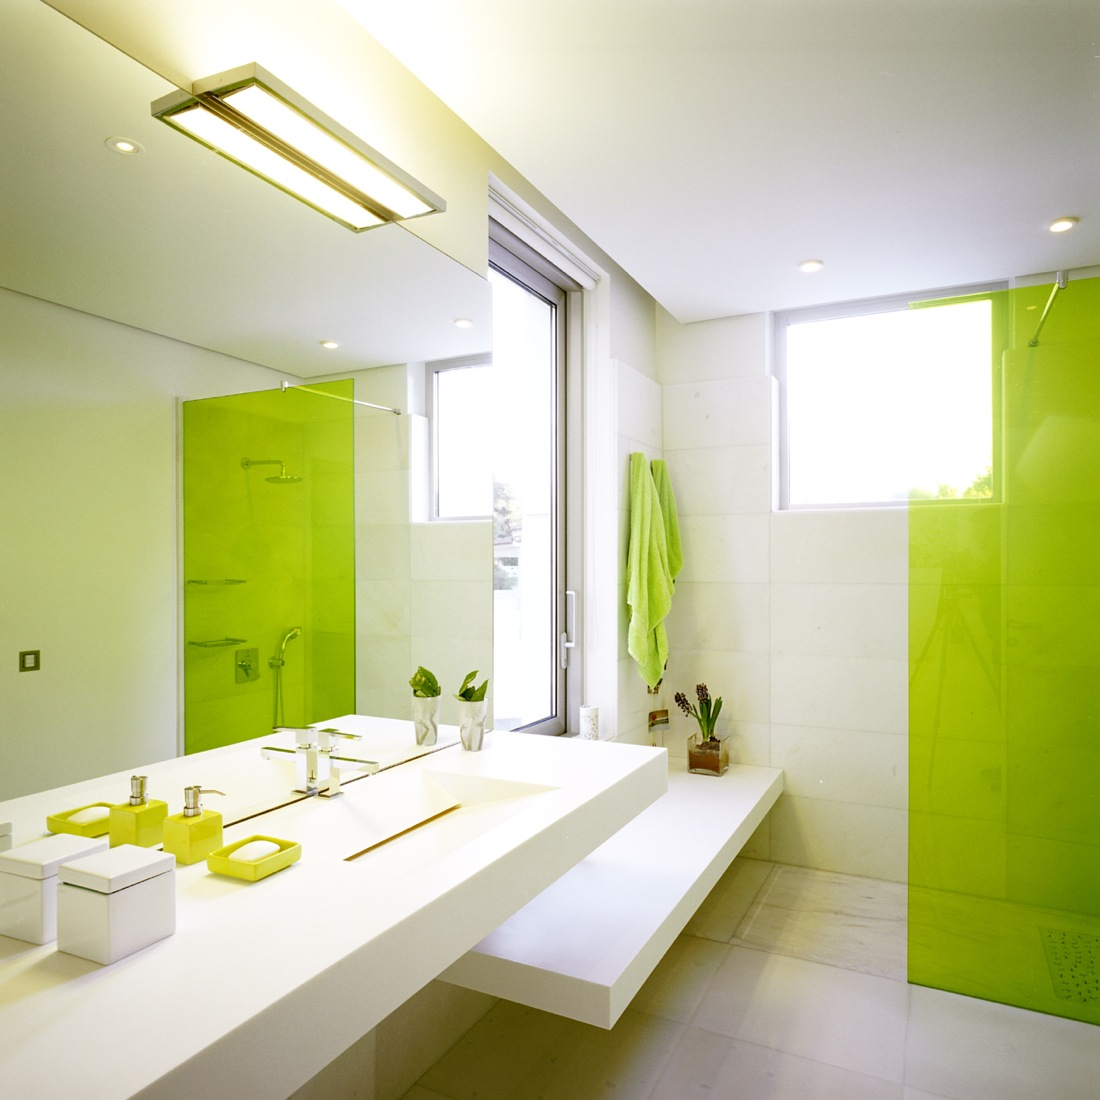 Minimalist bathroom designs home designs project for Latest bathroom interior